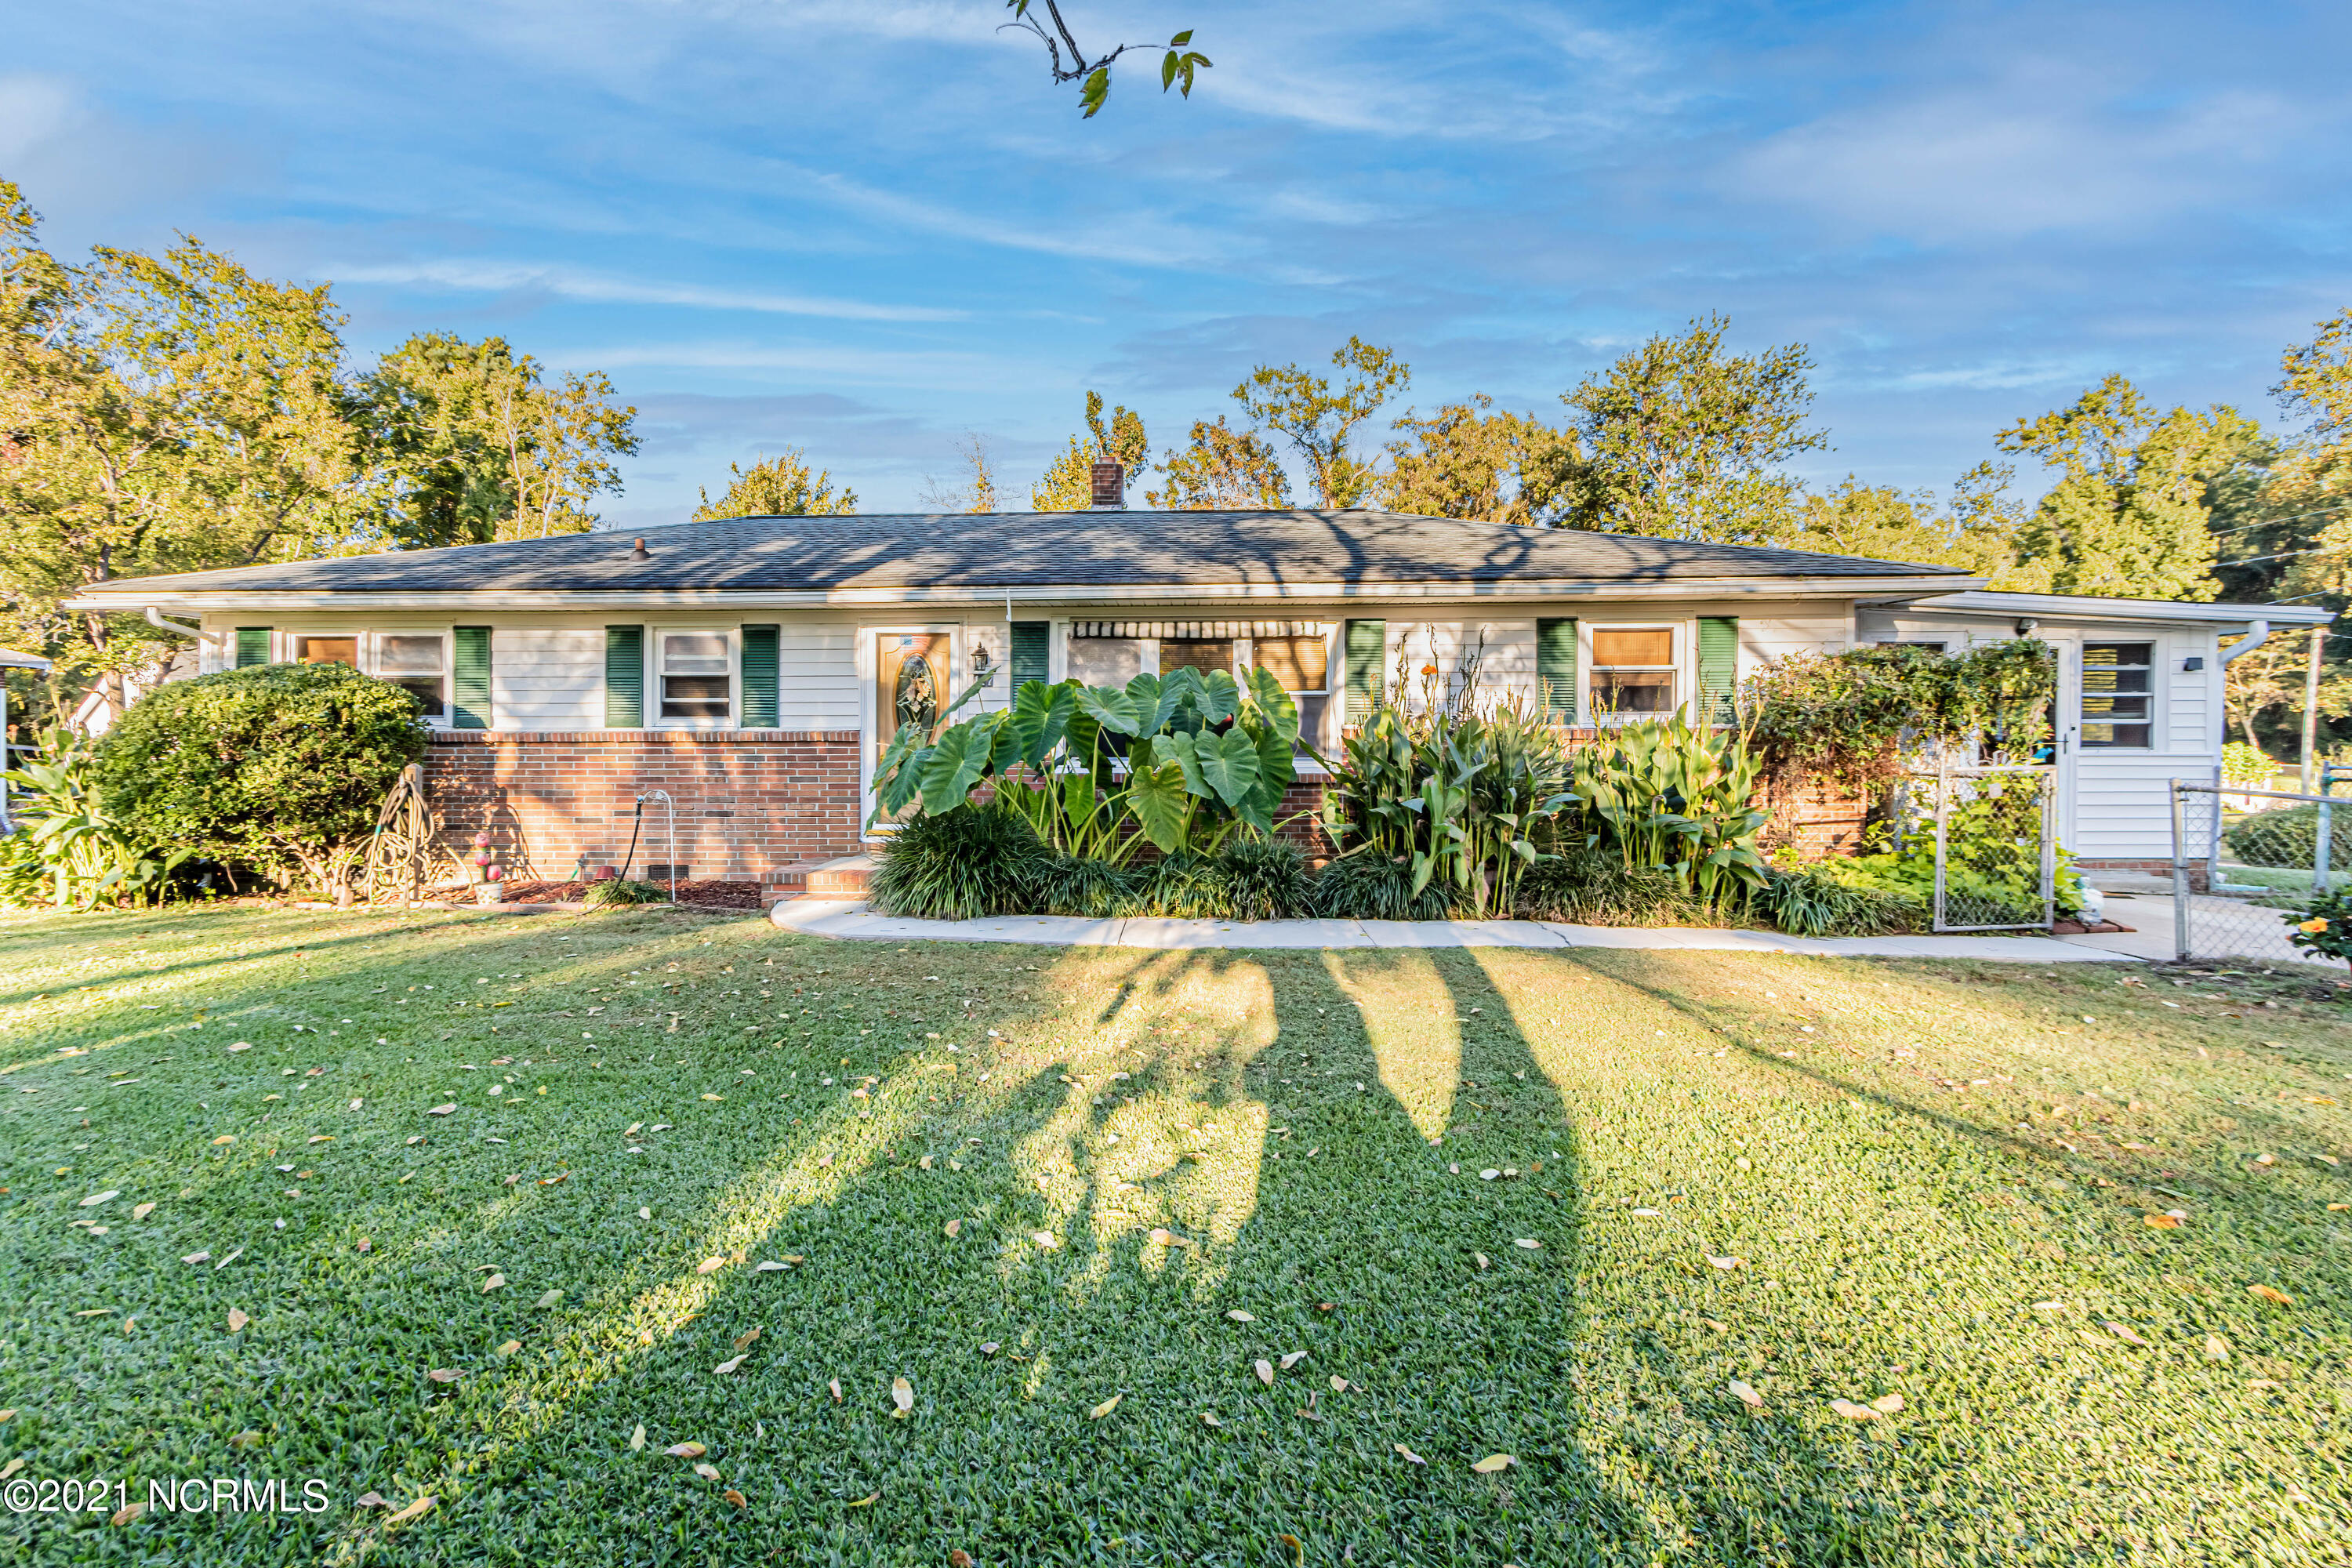 Perfect starter home in the Jacksonville city limits! This 3 bedroom, 1 1/2 bathroom home sits on a corner lot you are sure to appreciate. A few noted features of this home include a fully enclosed side porch/Florida room, a separate bonus room that can be used as a fourth bedroom or an office, a large eat in kitchen and another enclosed back porch with skylights leading to the back yard! Sitting on .41 acres in a quiet subdivision, you will love the convenience of being close to it all! HVAC and ductwork were replaced just one year ago. Call today for a showing!